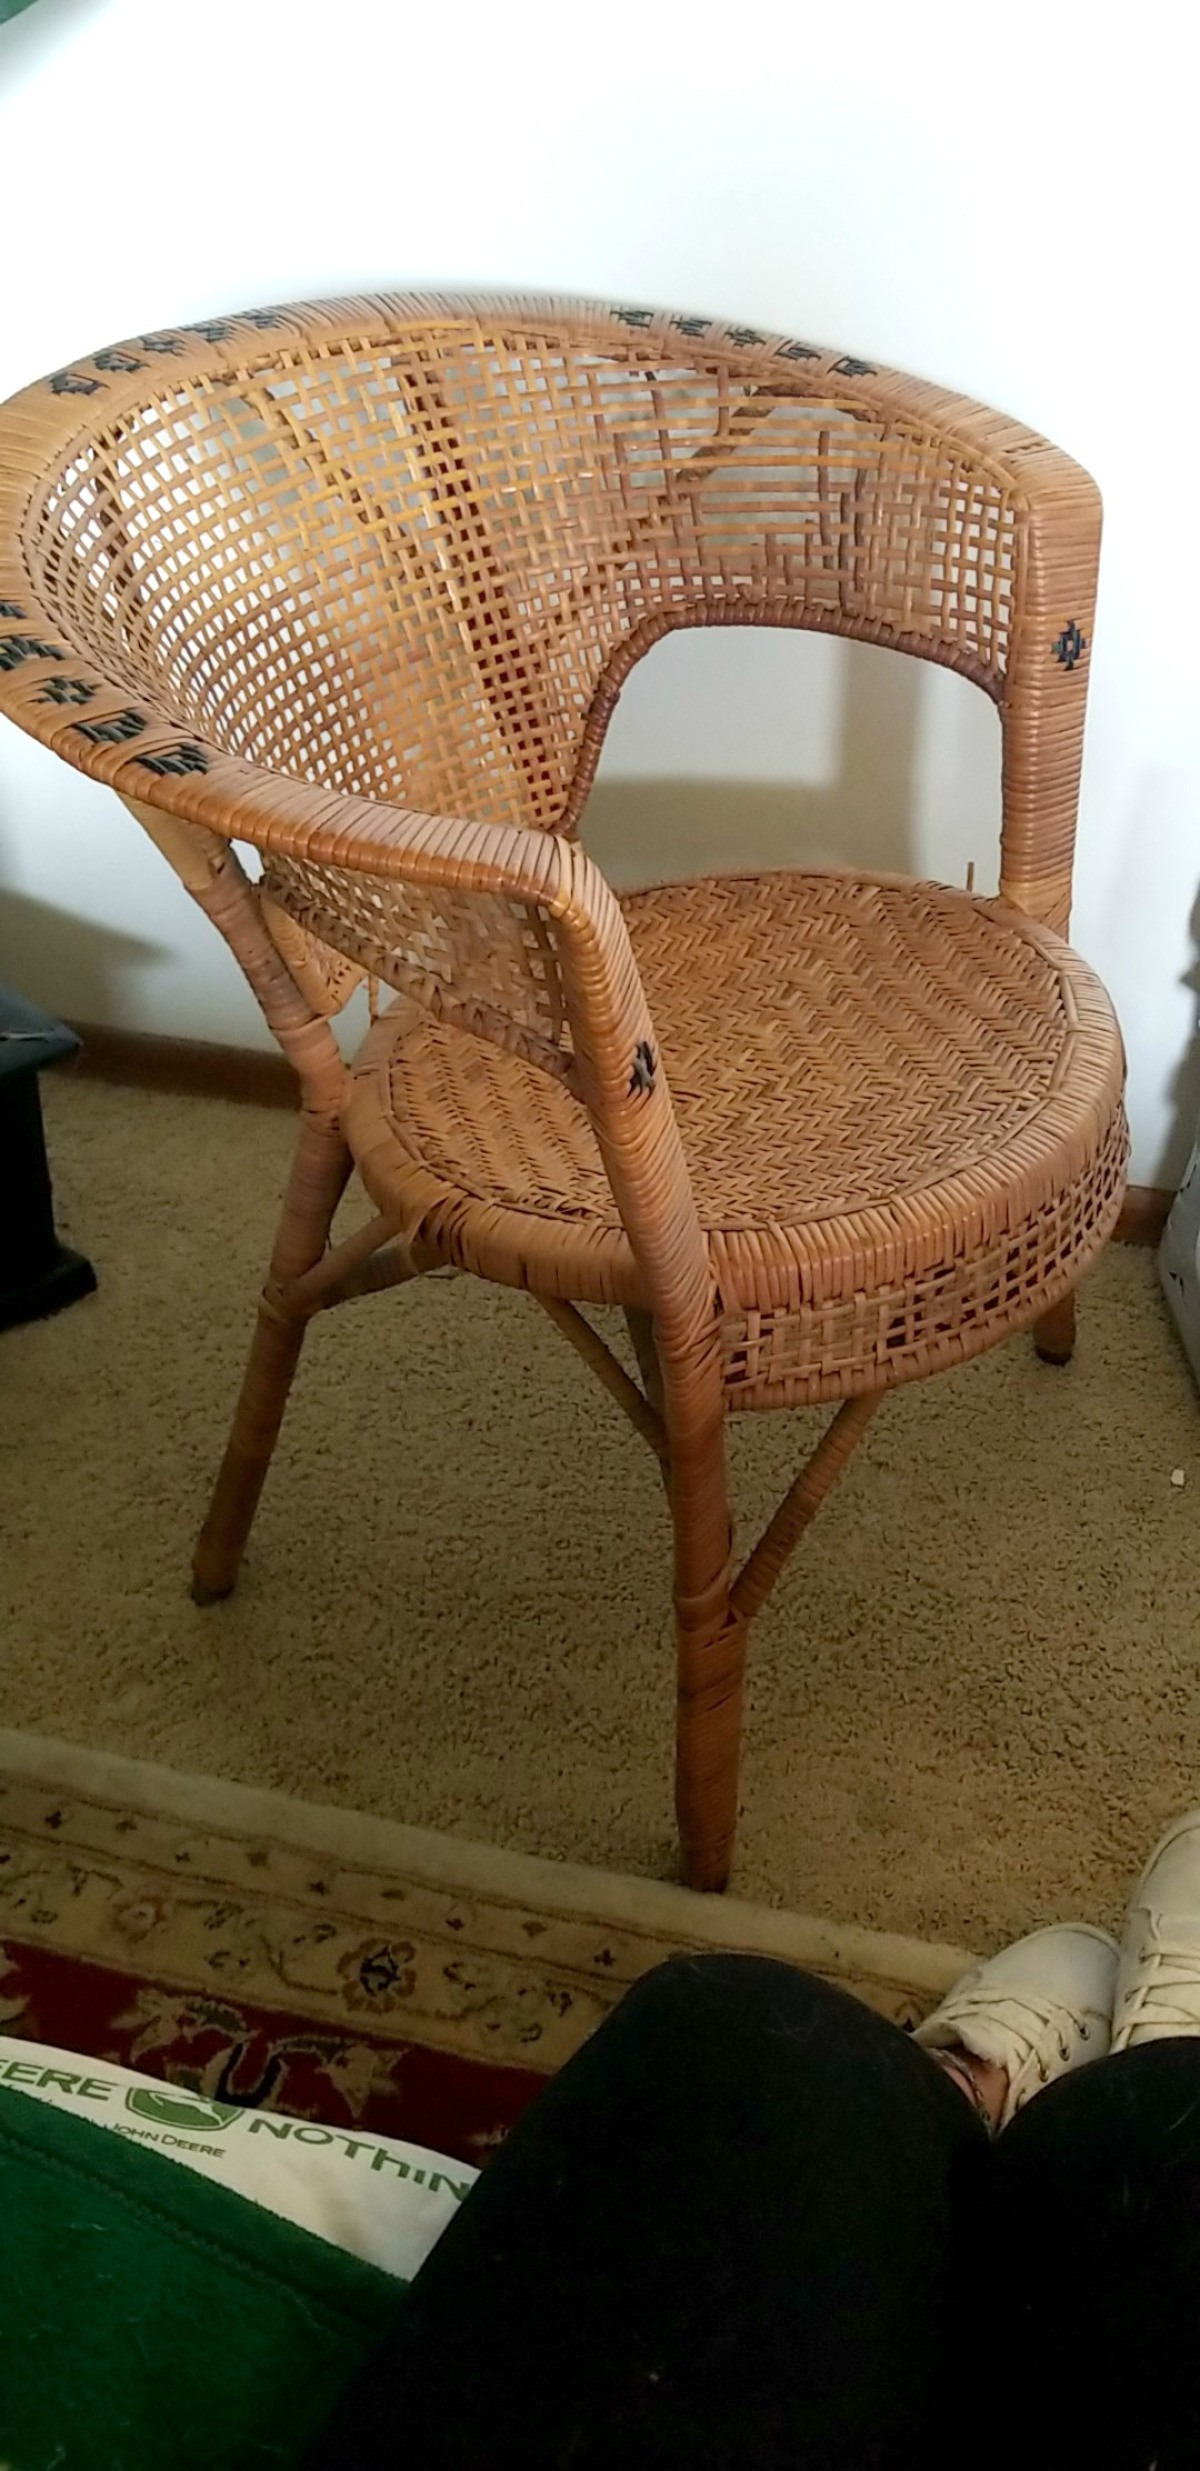 value of a vintage wicker chair x8